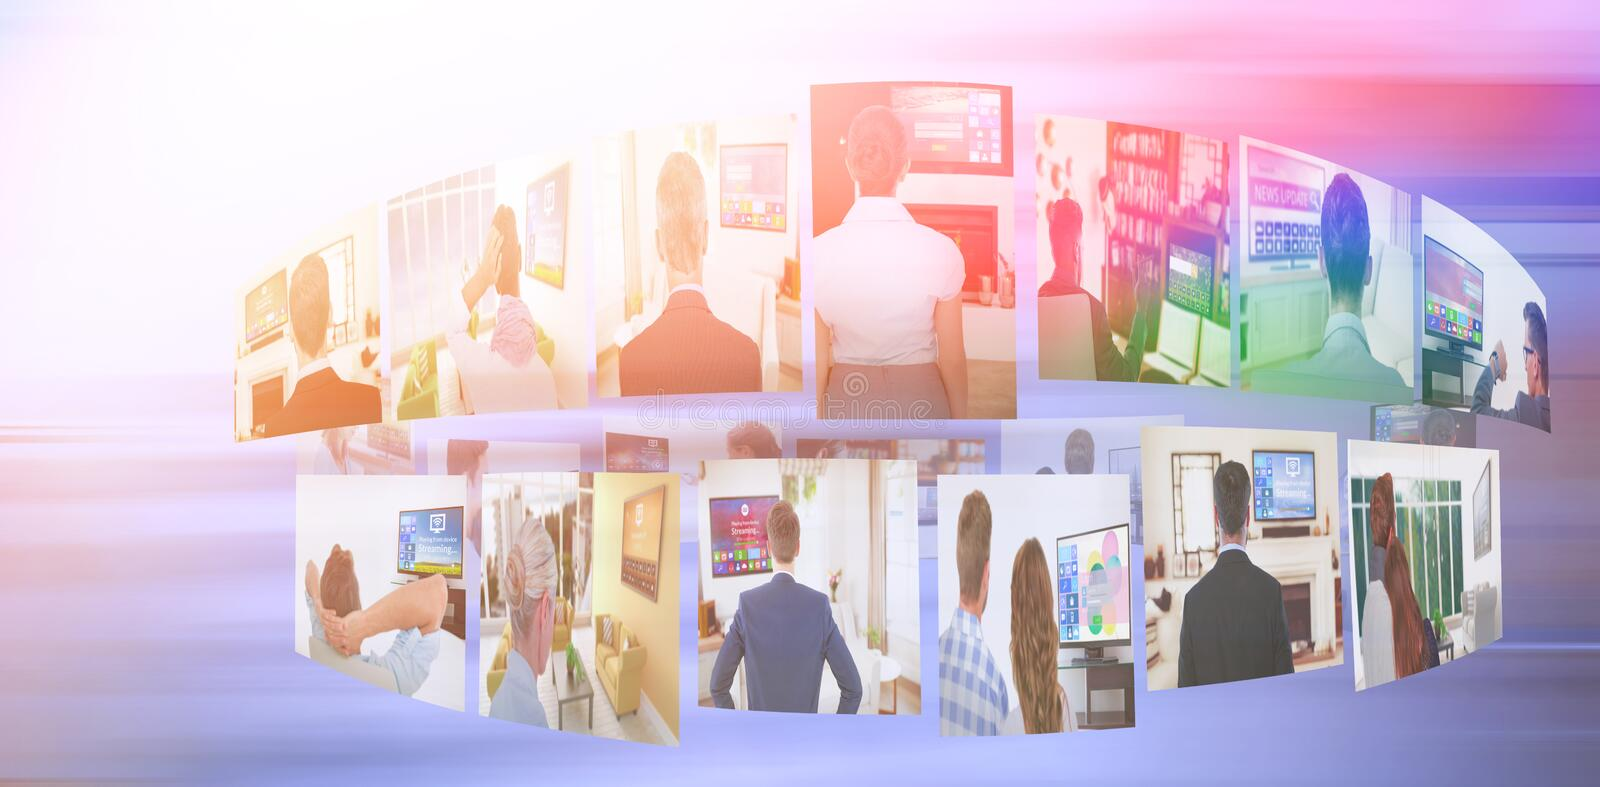 Composite image of digital image of various screens representing business people stock illustration